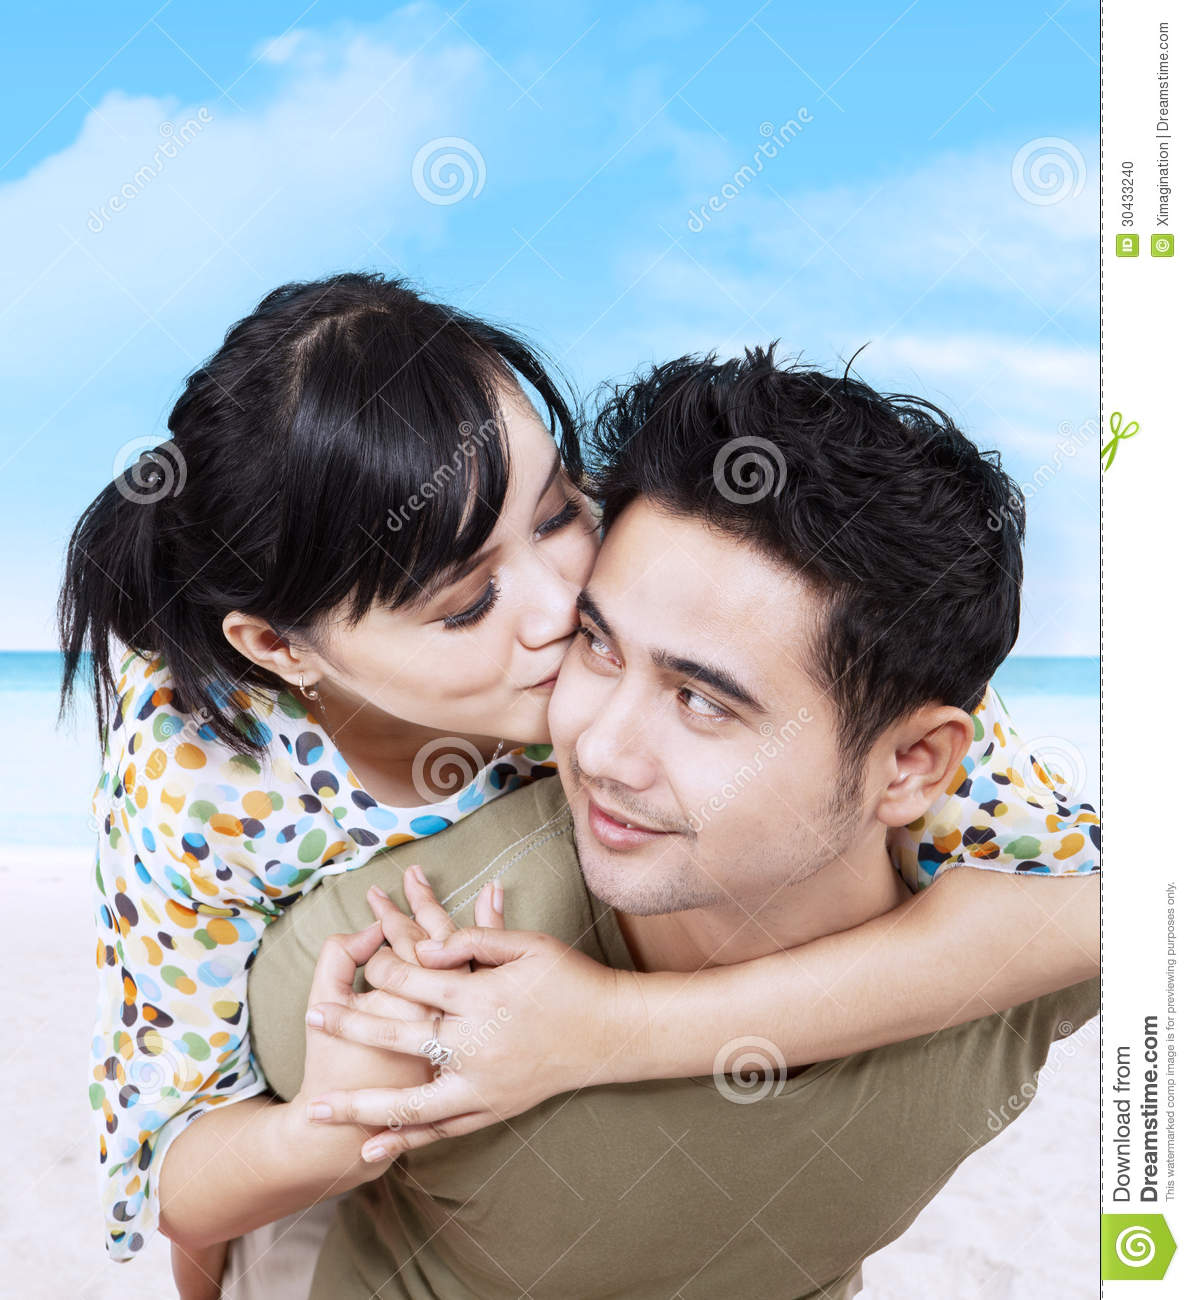 Happy Couple Sitting On Sandy Beach Embracing Kissing: Romantic Couple Hugging On The Beach Stock Photo